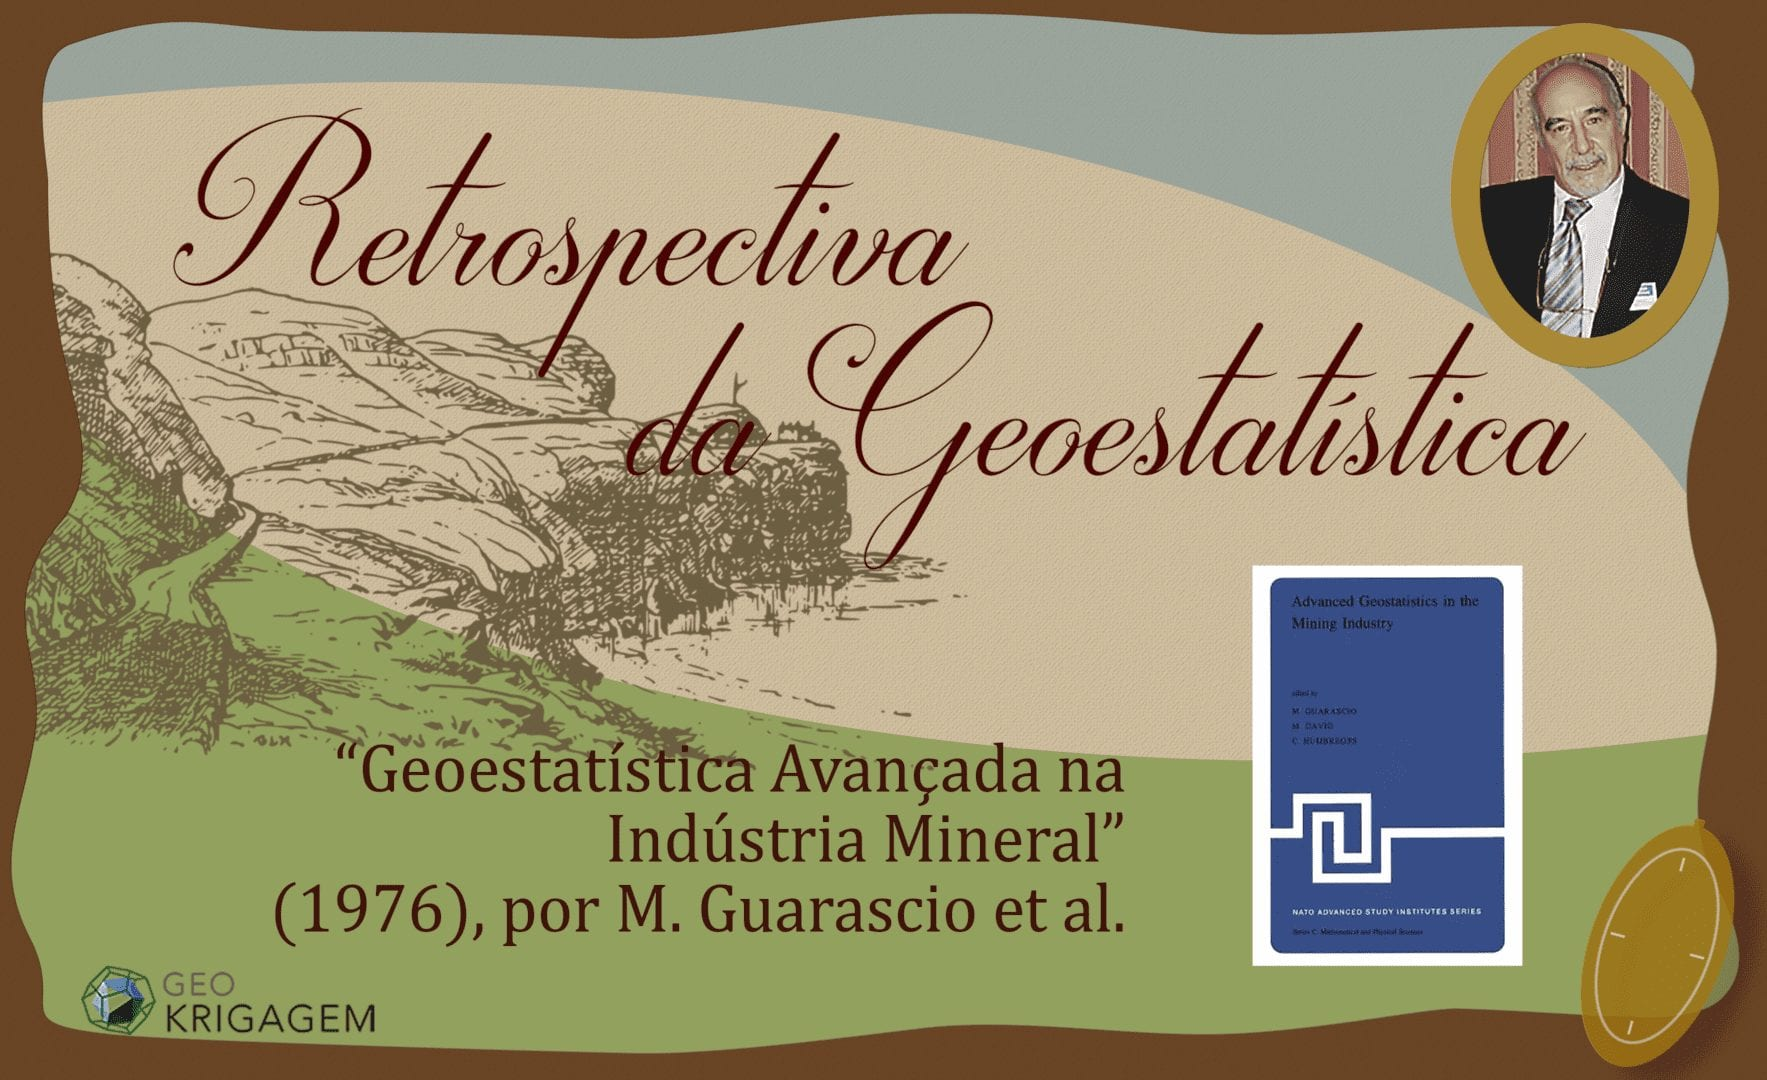 Retrospectiva da geoestatística, resenha de livro Advanced Geostatistics in the Mining Industry, M. Guarascio, M. David, C. Huijbregts